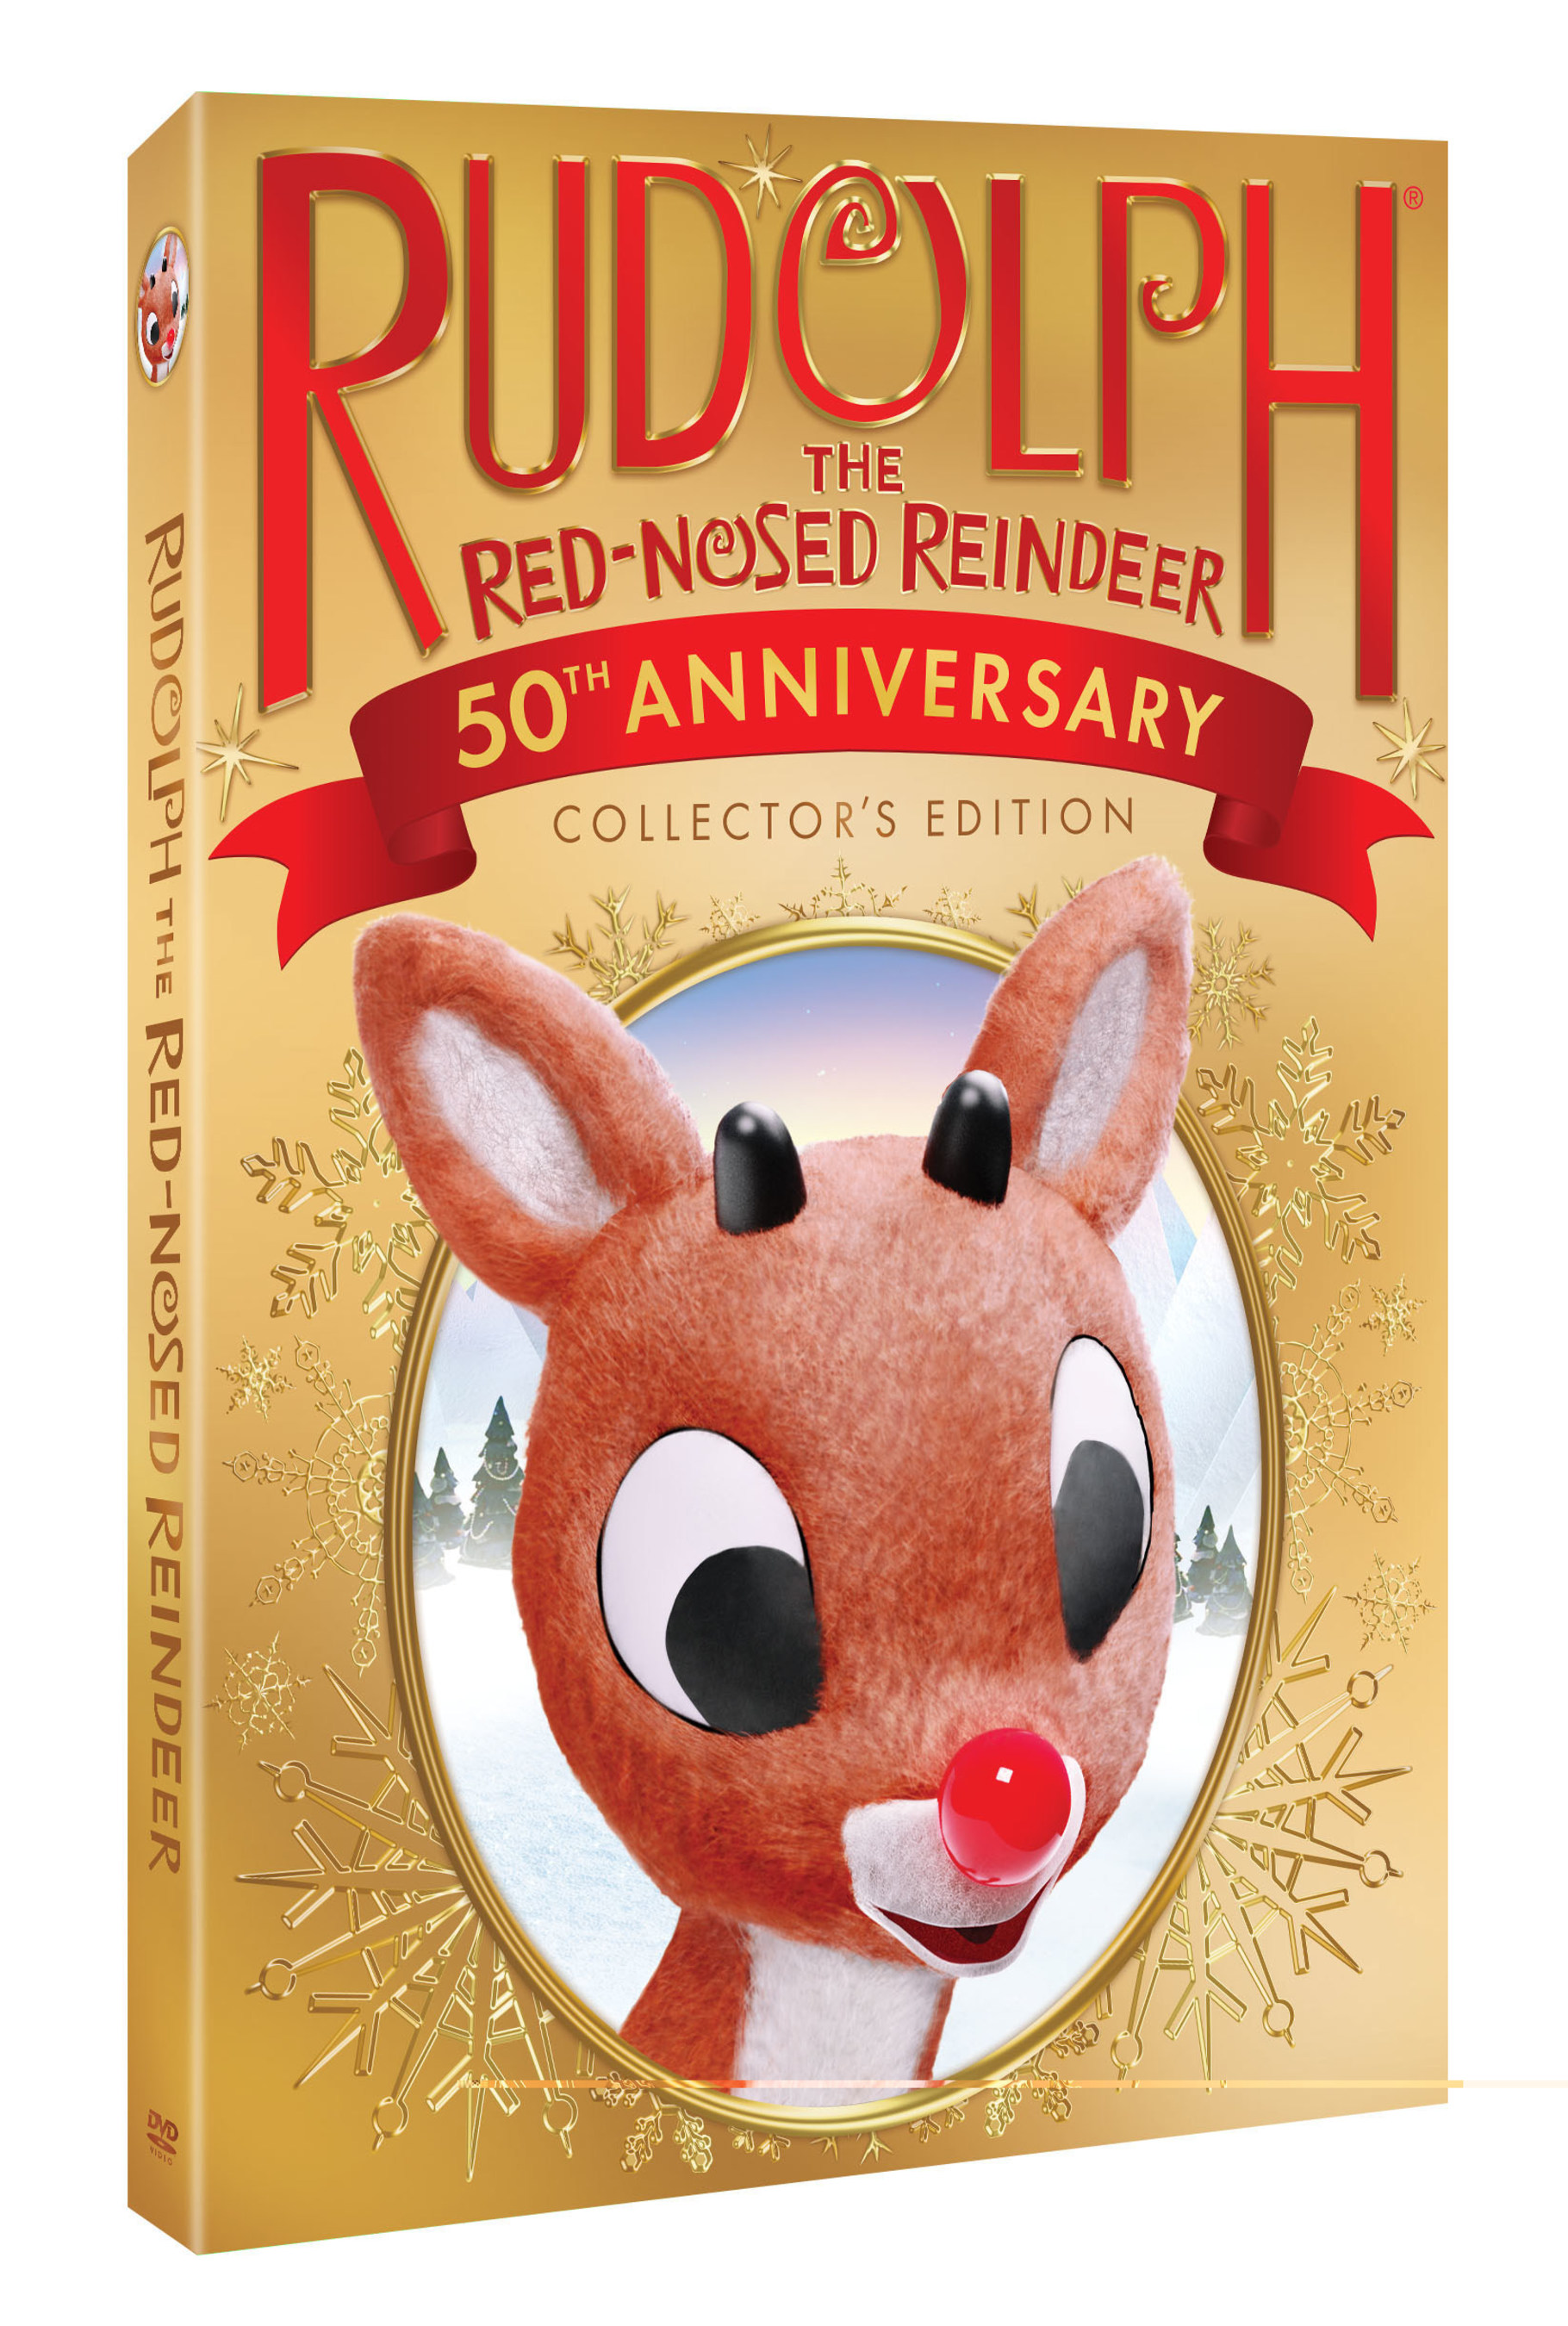 """A special 50th Anniversary DVD and Blu-ray release of the holiday classic """"Rudolph the Red-Nosed Reindeer"""" comes to stores on Nov. 4, 2014.  Rudolph the Red-Nosed Reindeer(c) and (r) The Rudolph Co., L.P.  """"Rudolph the Red-Nosed Reindeer"""" animated program(c) Classic Media, LLC. All rights reserved. (PRNewsFoto/DreamWorks Animation)"""